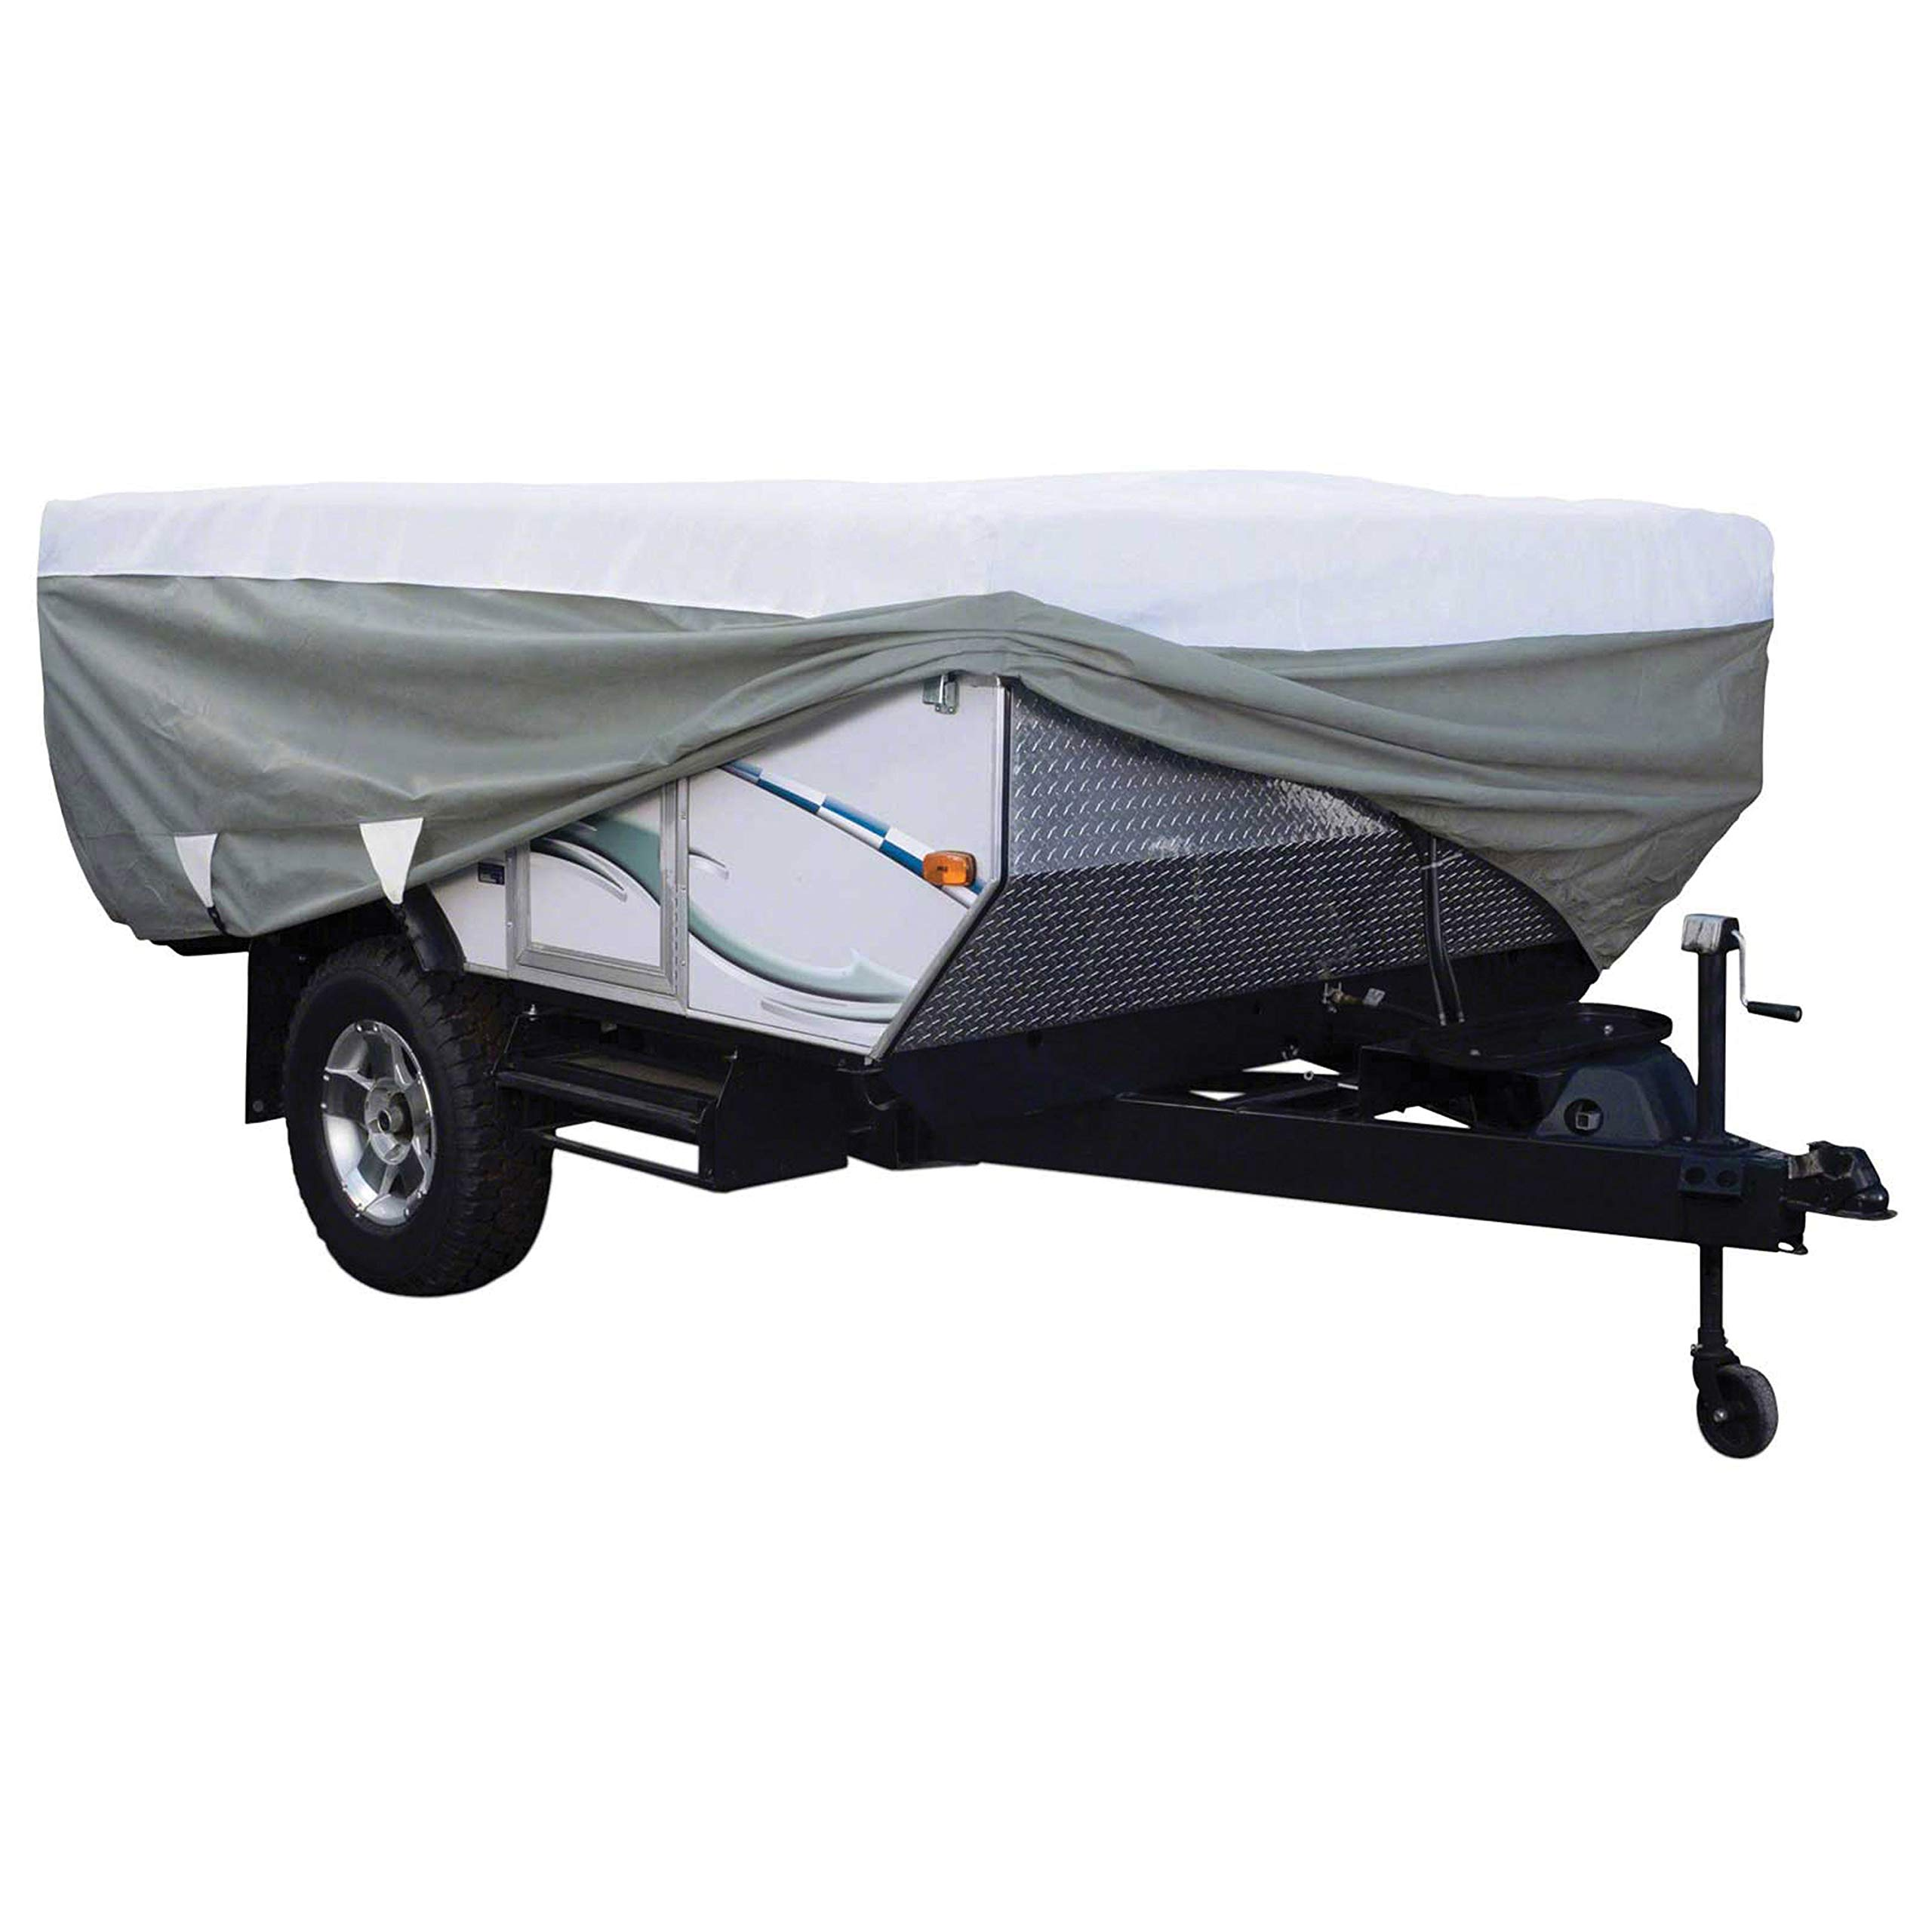 Classic Accessories OverDrive PolyPro 3 Deluxe Folding Camping Trailer Cover, Fits 14' - 16' Trailers by Classic Accessories